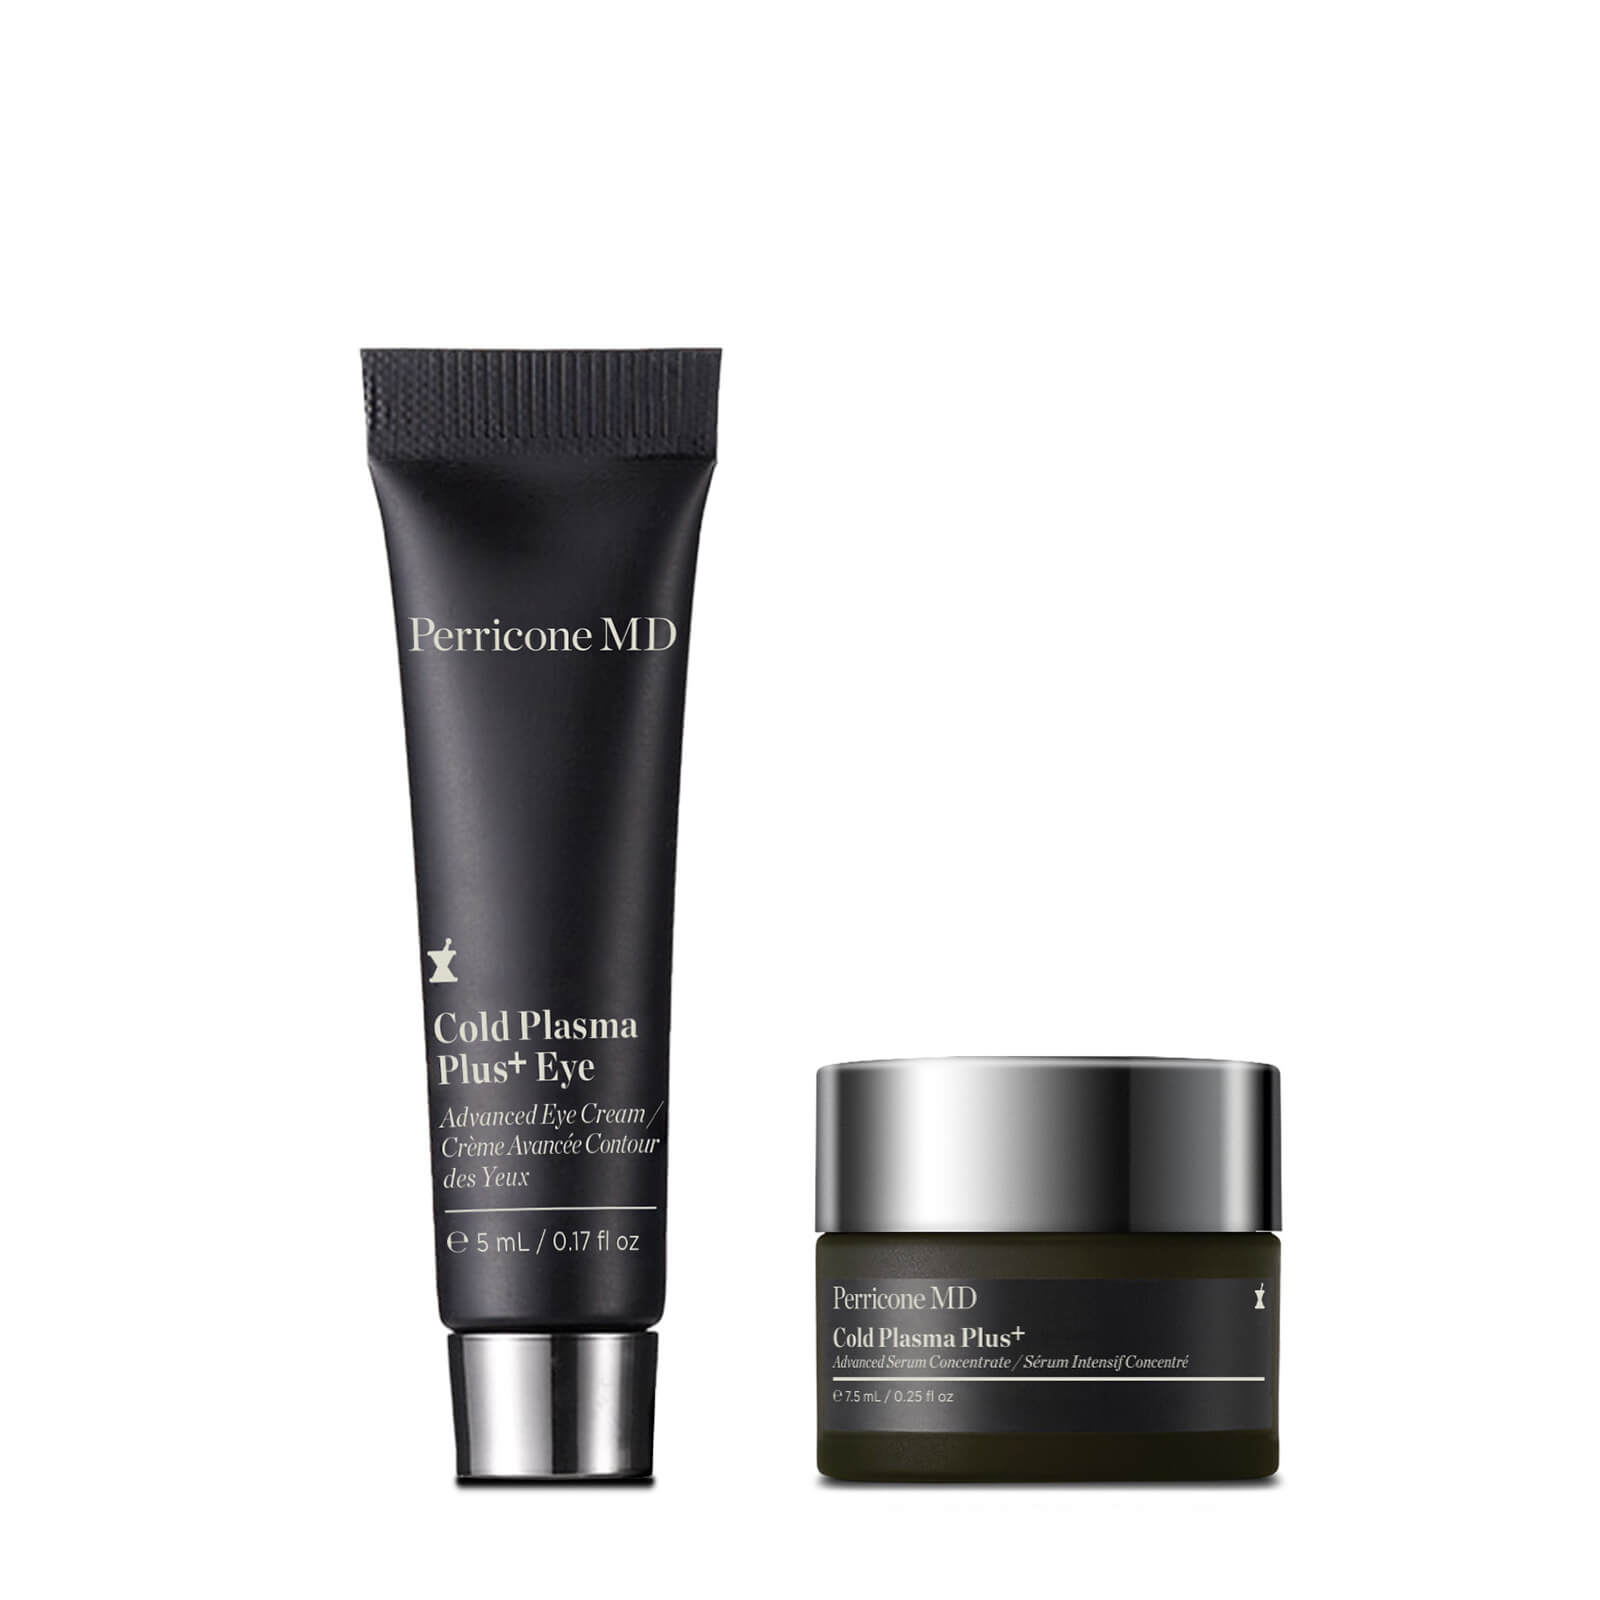 Cold Plasma Plus+ Face and Eye Deluxe Duo